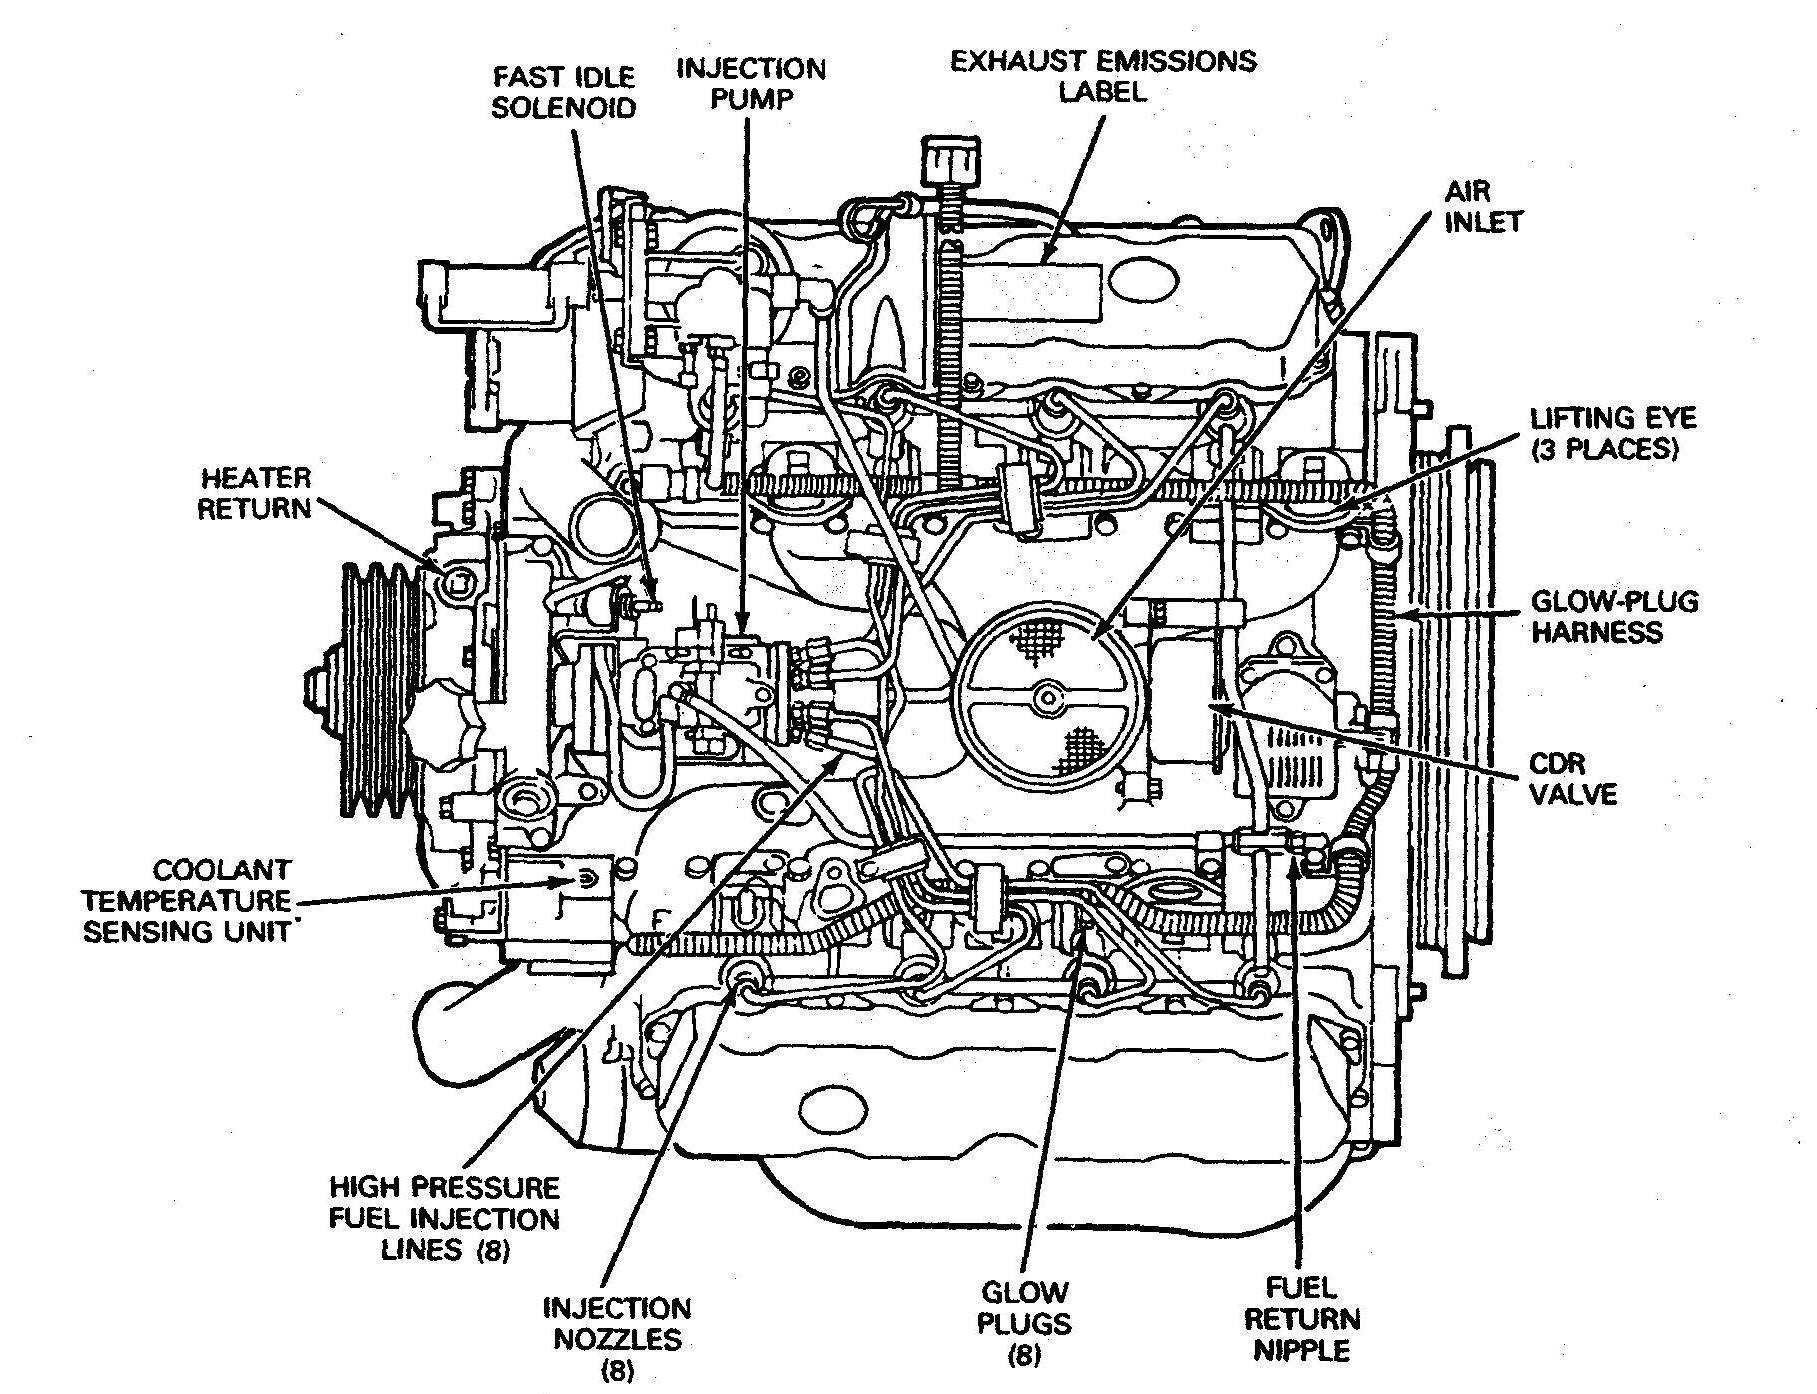 Ford 7 3 Diesel Engine Diagram 2 Automotive Engine Diagram Wiring Diagrams Of Ford 7 3 Diesel Engine Diagram 2